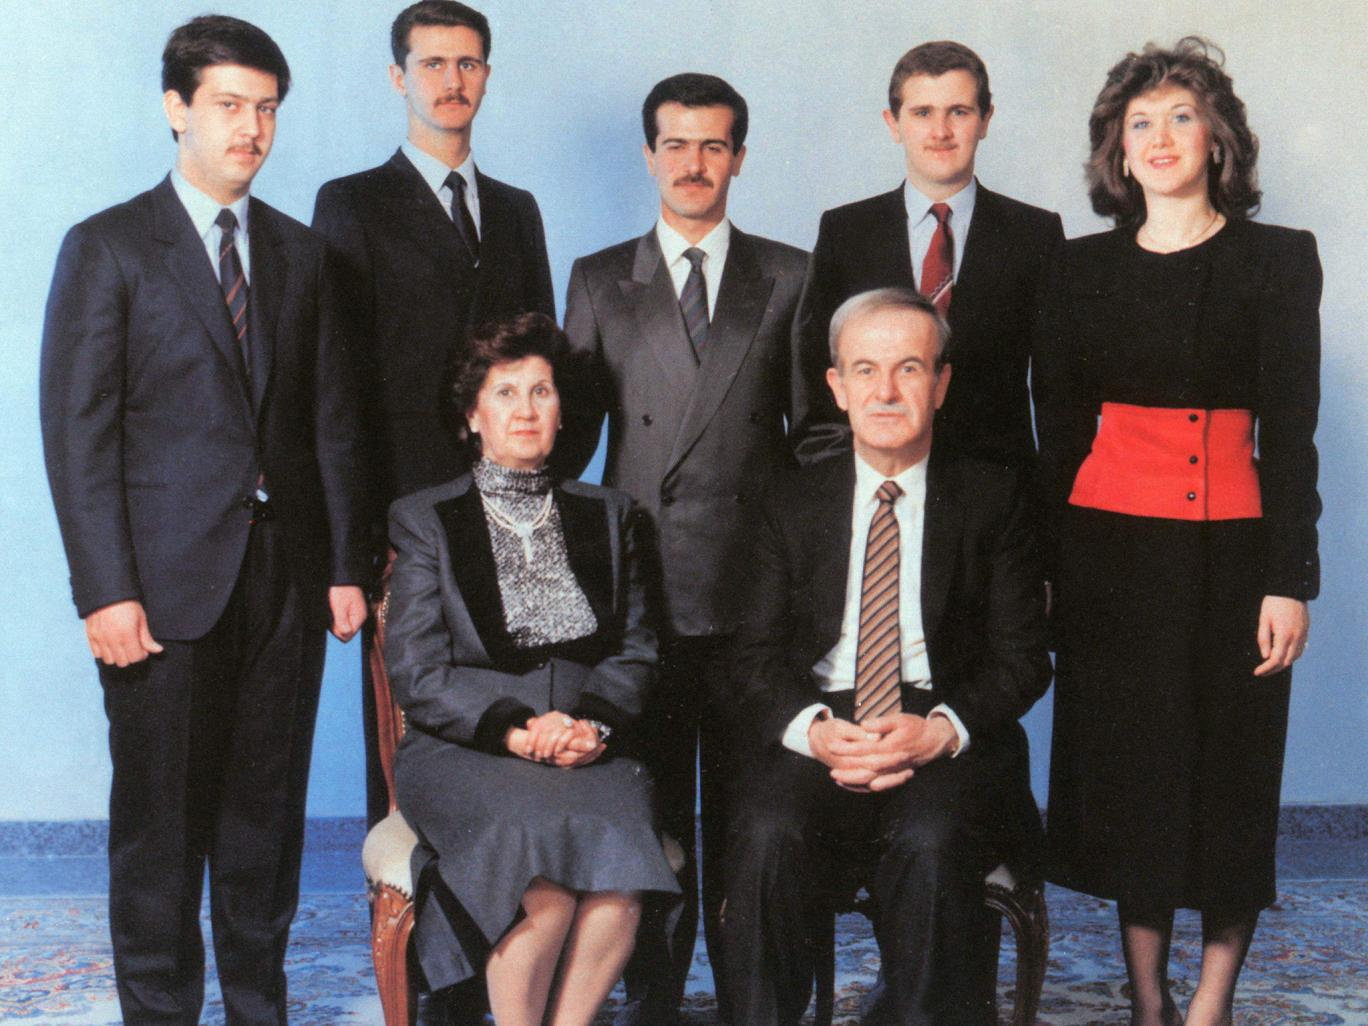 https://upload.wikimedia.org/wikipedia/commons/1/1f/Al_Assad_family.jpg